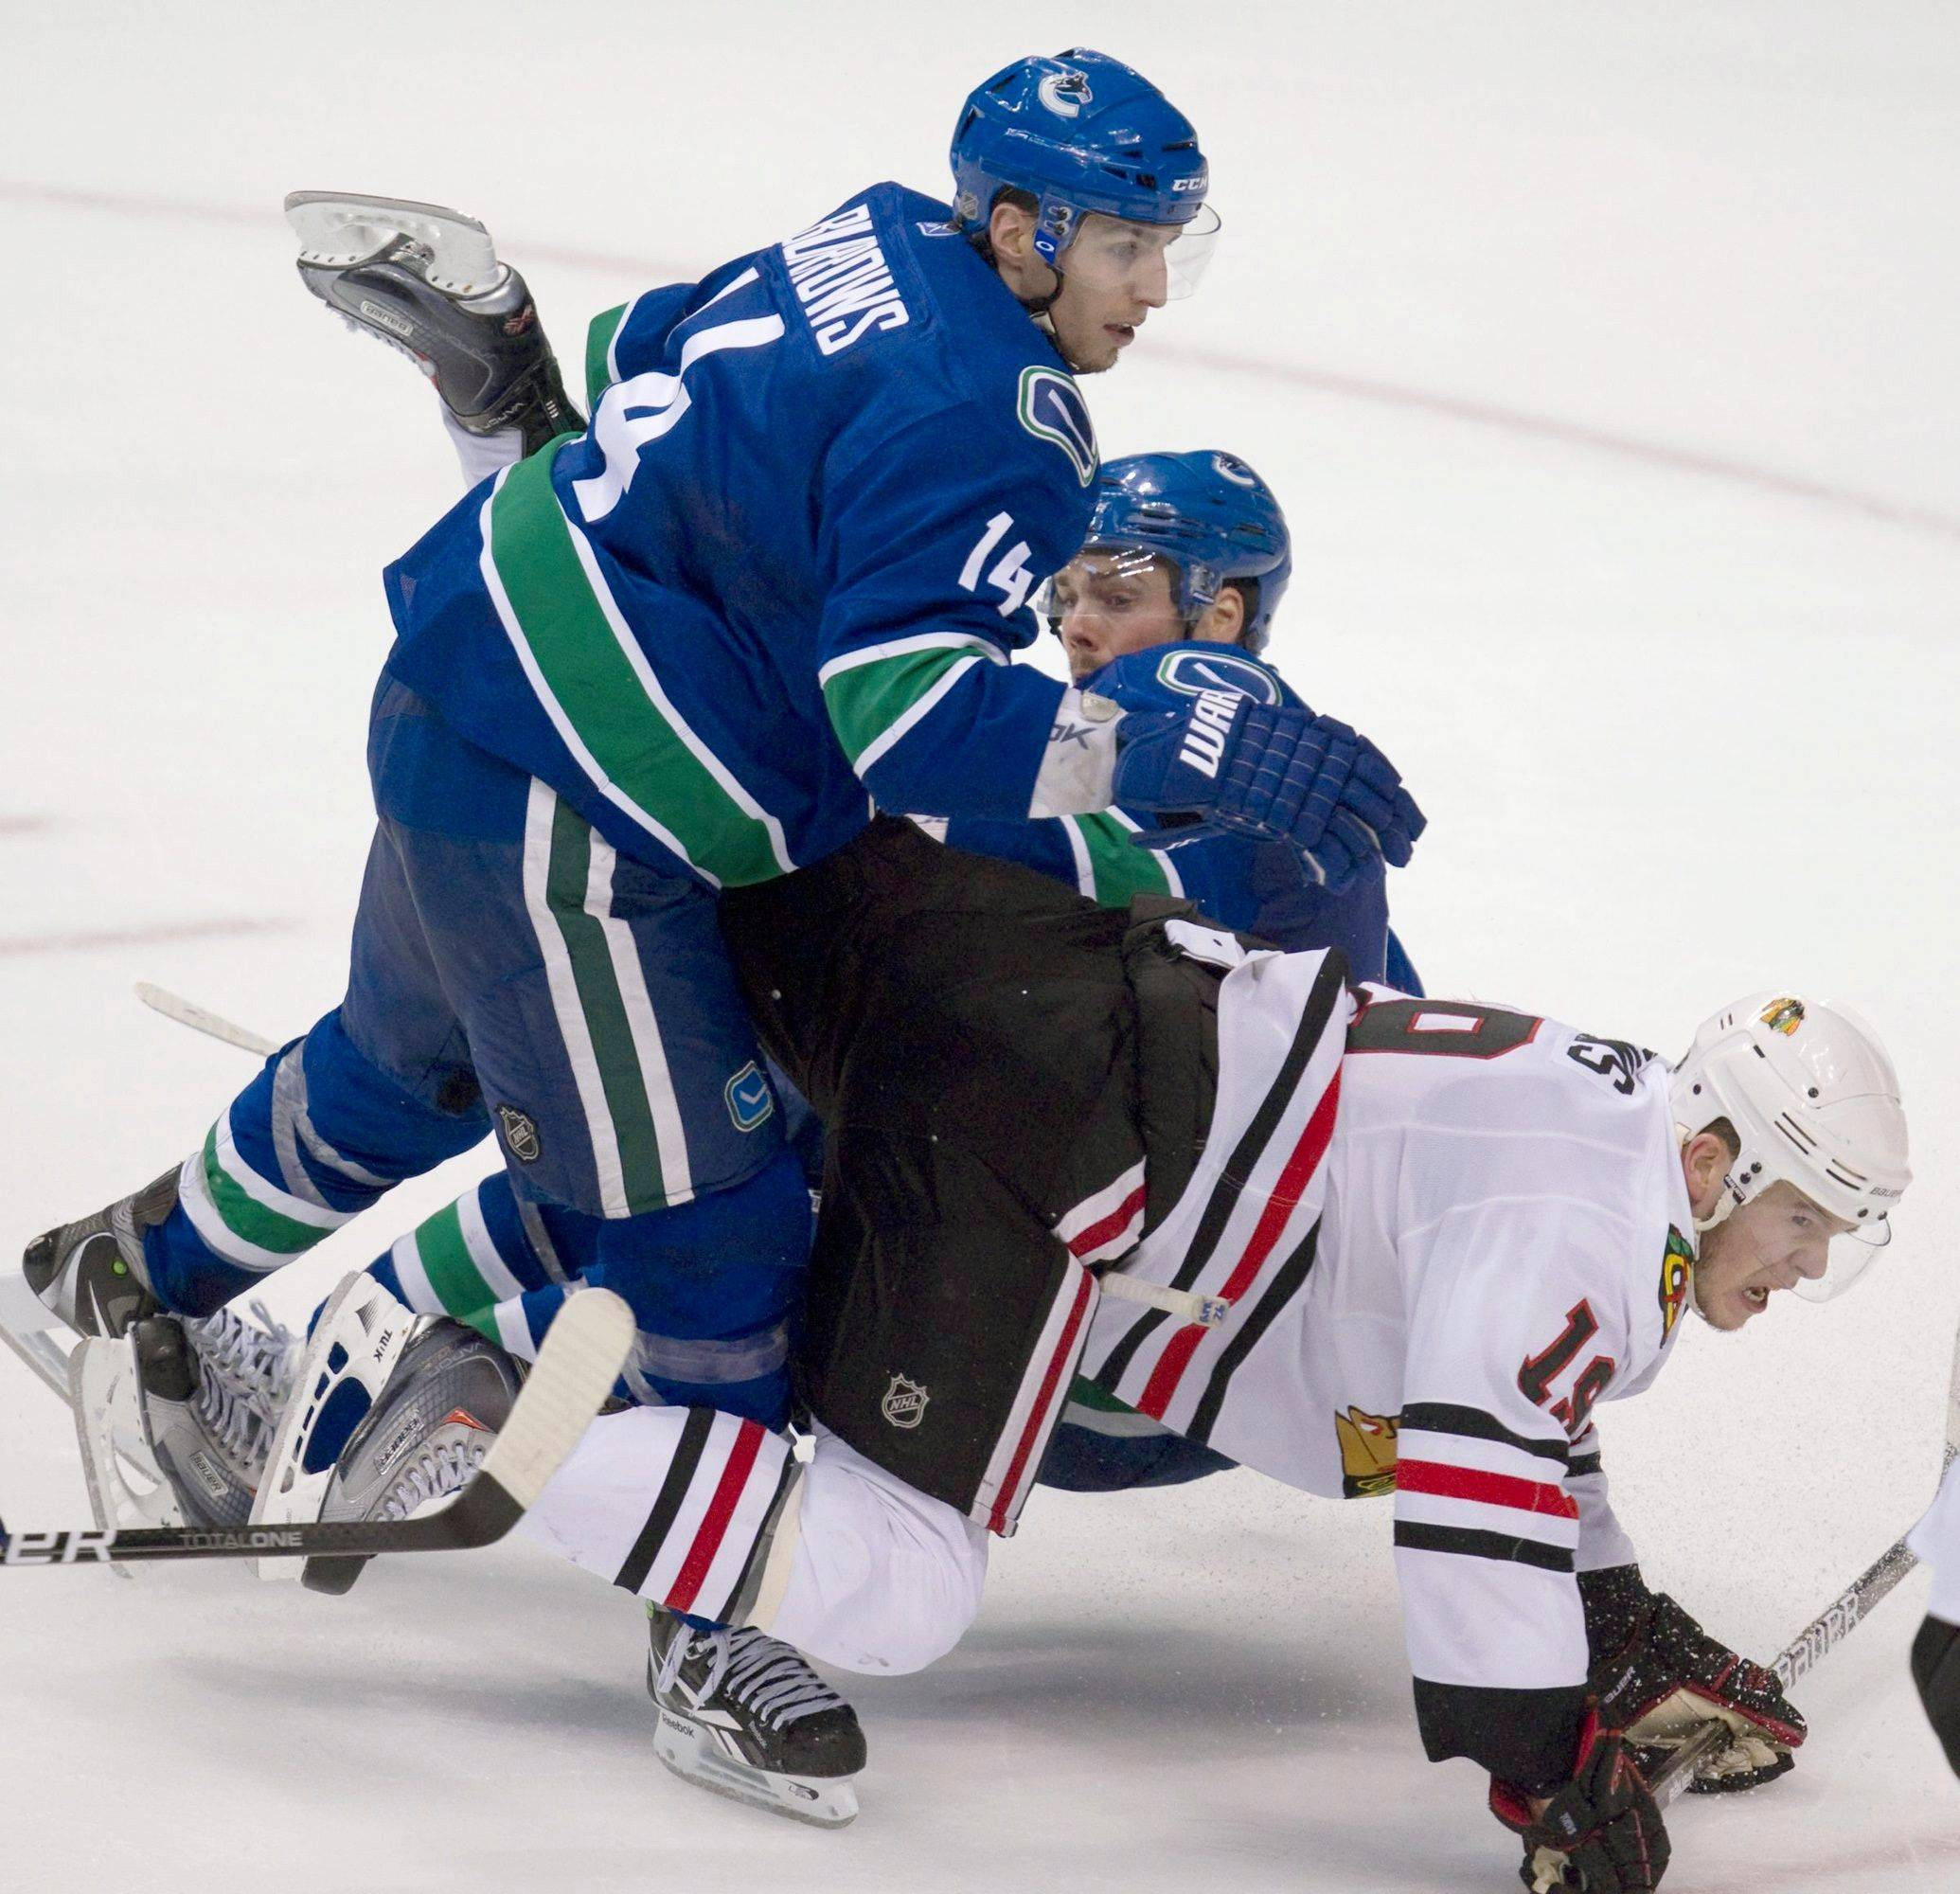 Vancouver Canucks' Alex Burrows, left, and teammate Dan Hamhuis take out Chicago Blackhawks' Jonathan Toews just before he scored during the third period of game 7.